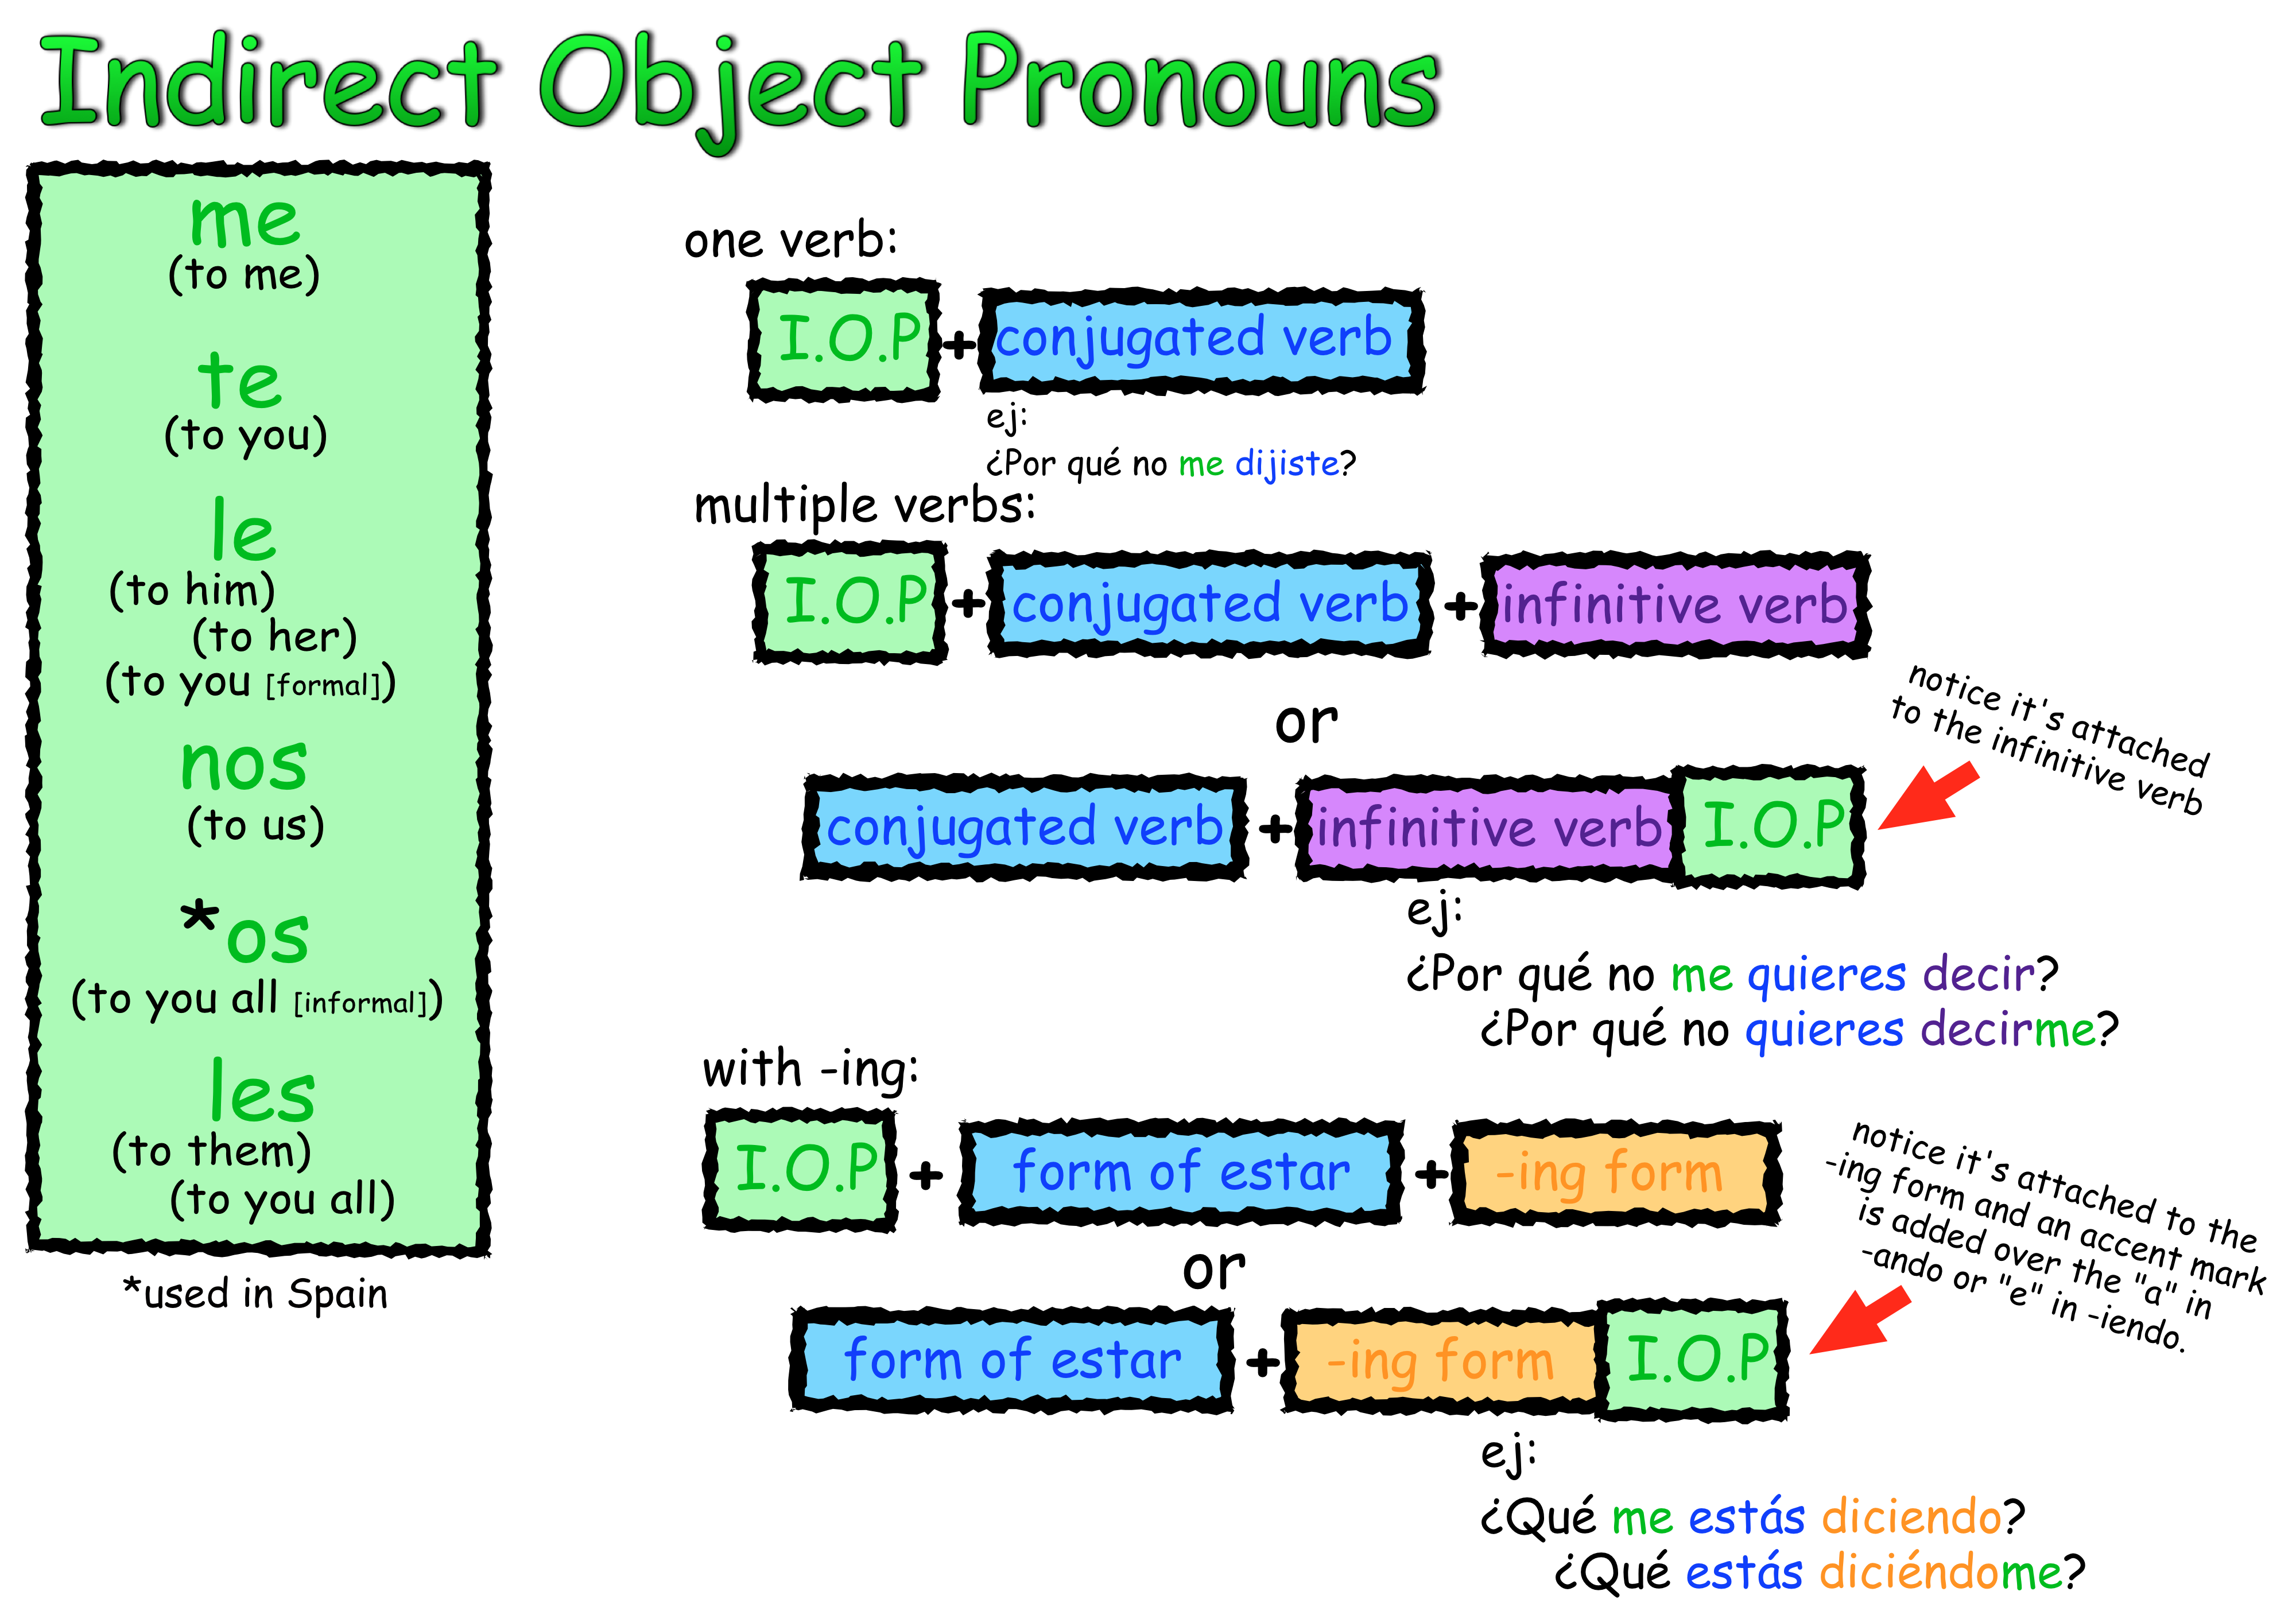 worksheet Indirect Object Pronouns Spanish Worksheet 17 images about pronombre del objeto directo on pinterest spanish hidden pictures and pronoun worksheets